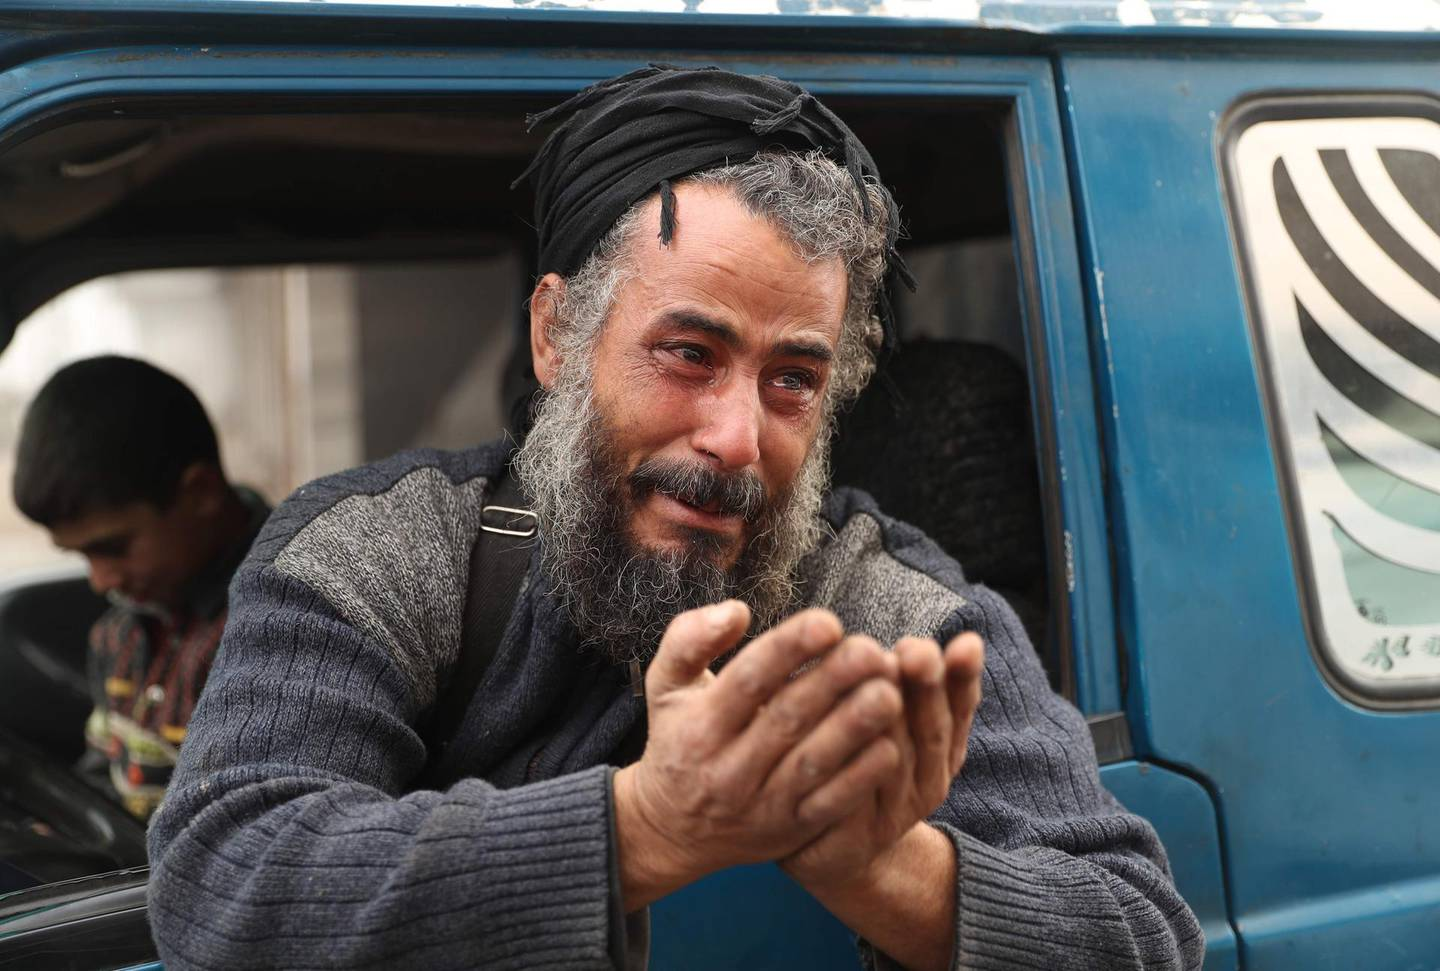 TOPSHOT - Abu Ahmad, one of the last people to flee from Maaret al-Numan in the northwestern Syrian Idlib province, reacts as he rides in a pick-up truck before leaving the town with his family towards a camp for the displaced, on December 24, 2019. Syrian government forces on December 24 were less than four kilometres (two miles) from the strategic city of Maaret al-Numan, the head of the Britain-based monitor, Rami Abdel Rahman, told AFP. Fearing further advances, thousands of Maaret al-Numan's residents have fled.  / AFP / Omar HAJ KADOUR